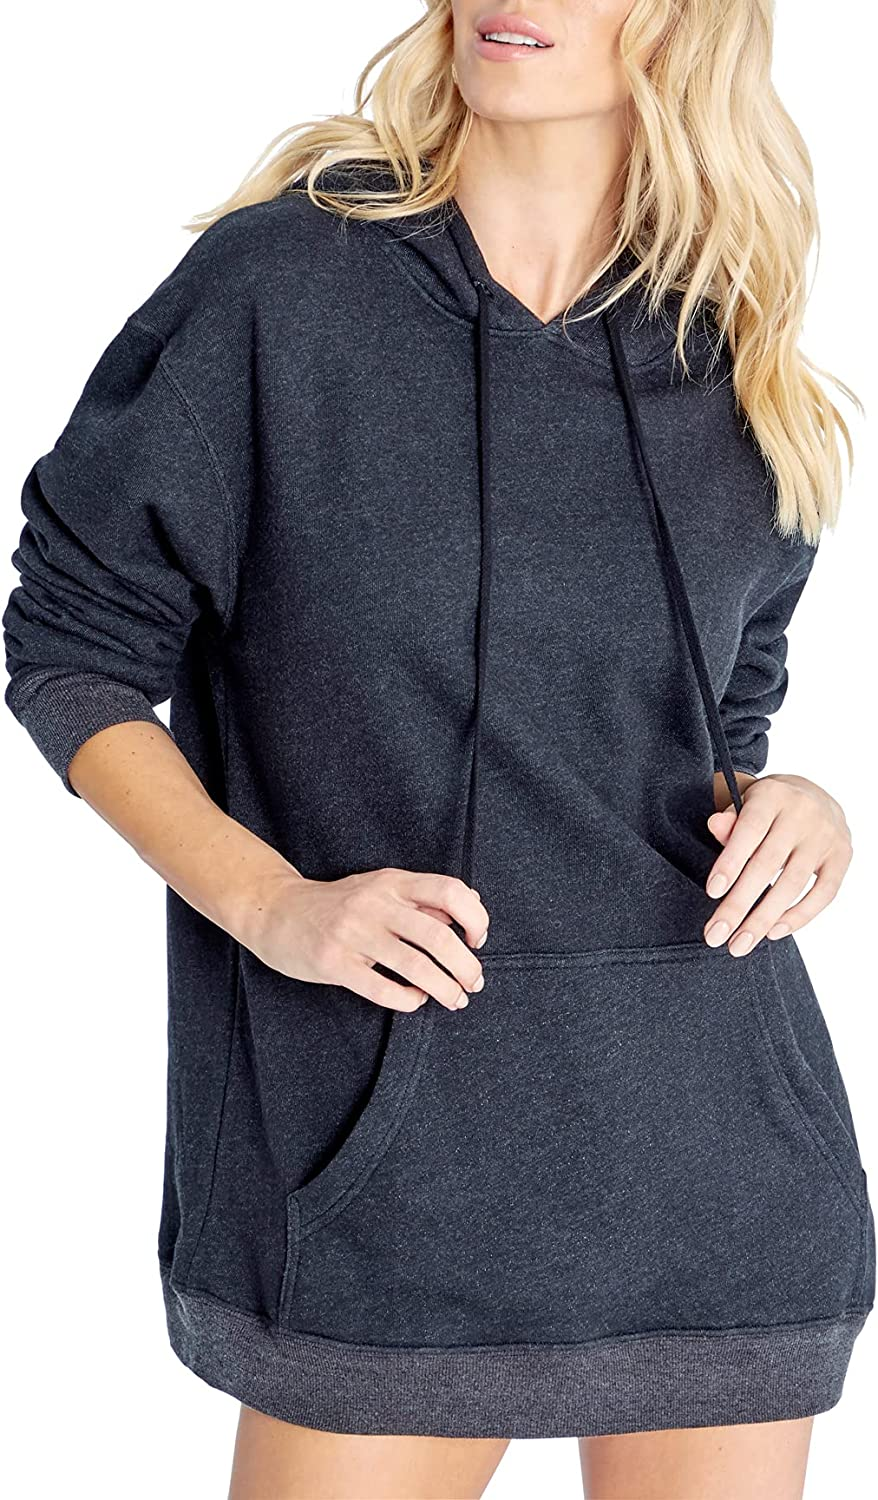 Wildfox Women's Colin Pullover Hoodie